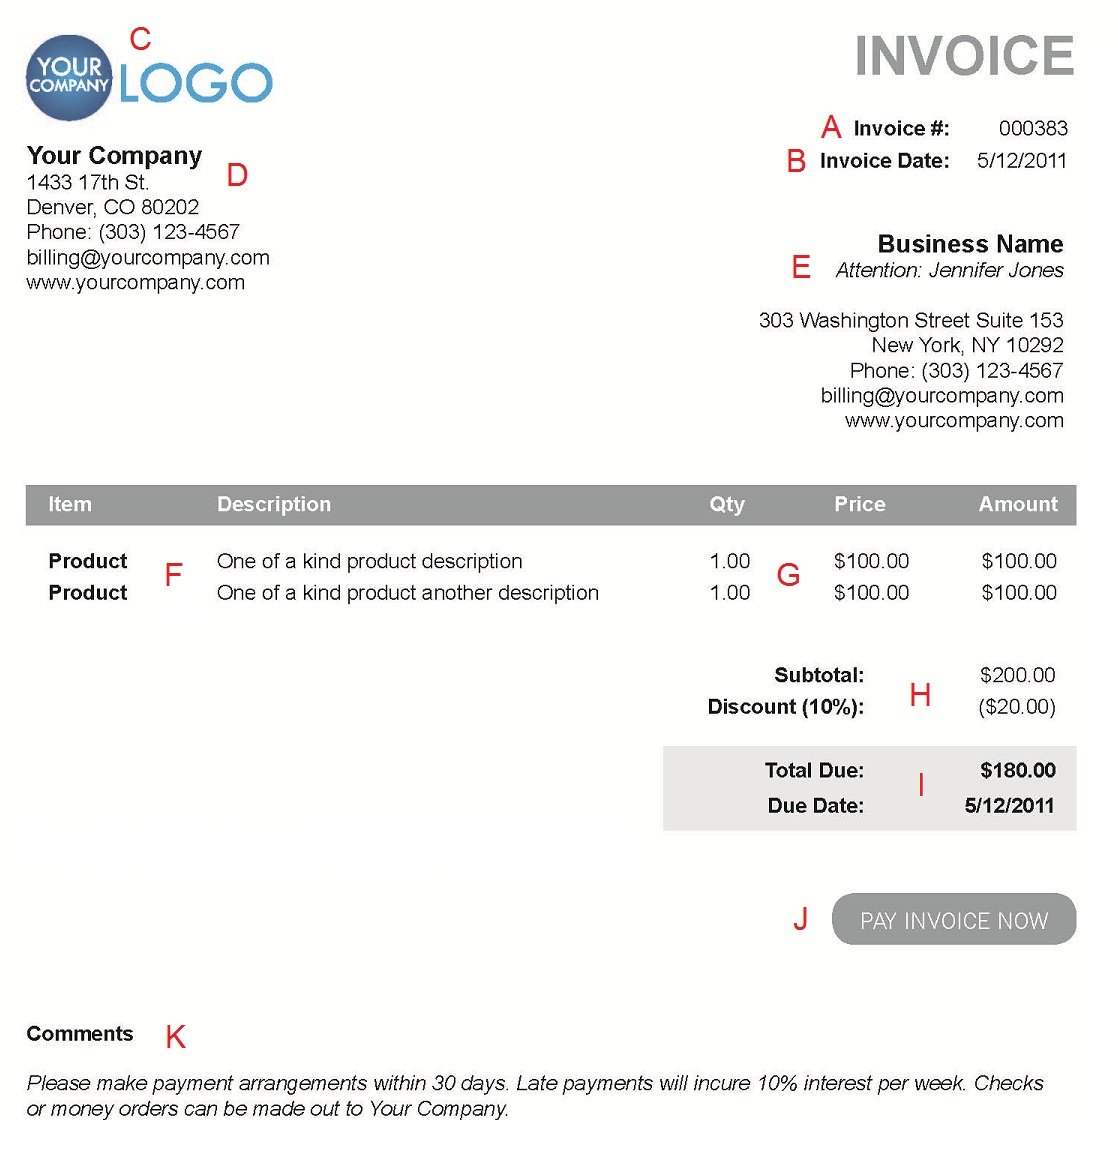 Gpwaus  Fascinating The  Different Sections Of An Electronic Payment Invoice With Gorgeous A  With Enchanting Free Invoice And Estimate Software Also Jeep Wrangler Unlimited Invoice In Addition Invoice For Photography And Invoice Template Html As Well As Invoice Scan Additionally Free Basic Invoice Template From Paysimplecom With Gpwaus  Gorgeous The  Different Sections Of An Electronic Payment Invoice With Enchanting A  And Fascinating Free Invoice And Estimate Software Also Jeep Wrangler Unlimited Invoice In Addition Invoice For Photography From Paysimplecom